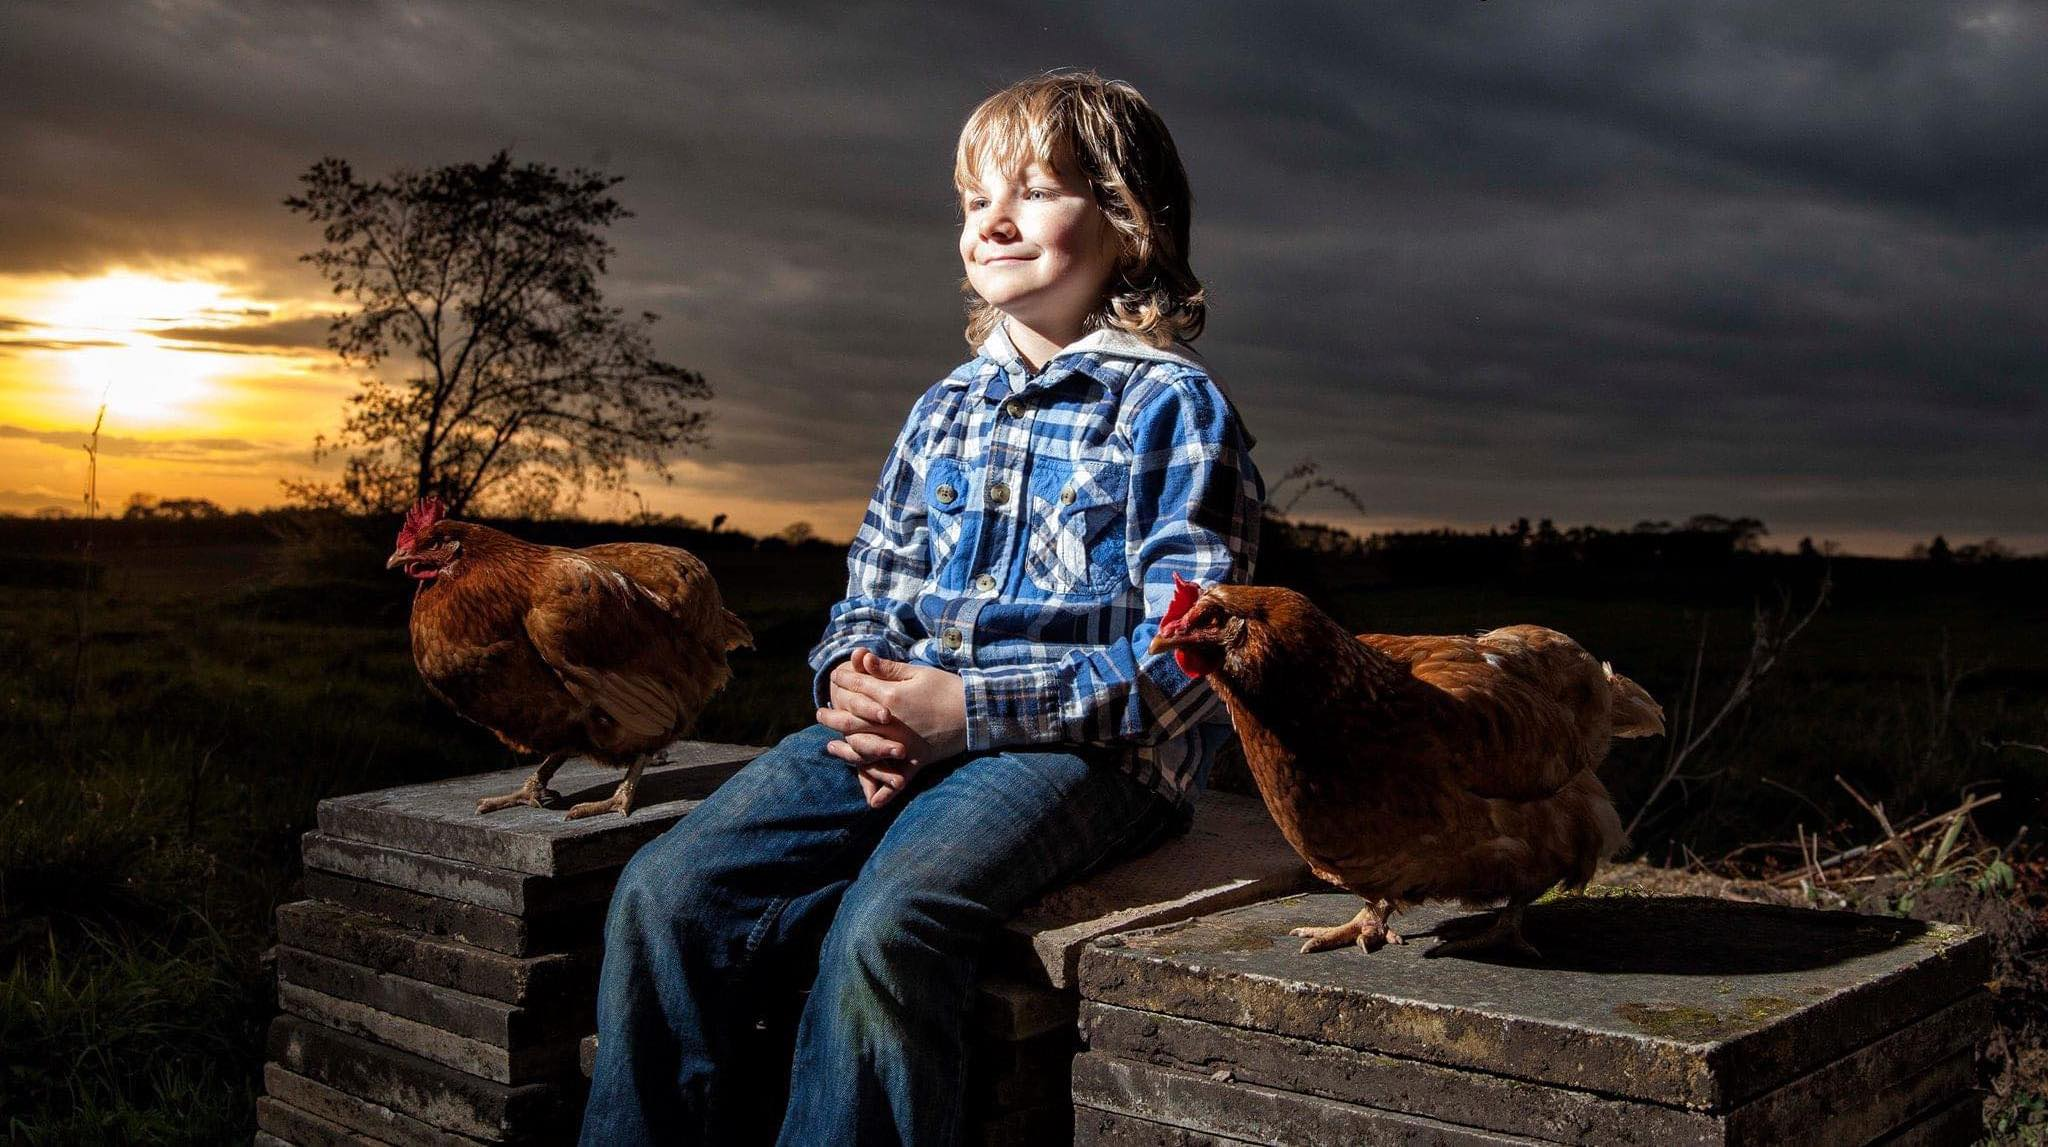 young farmer boy chickens styled shoot